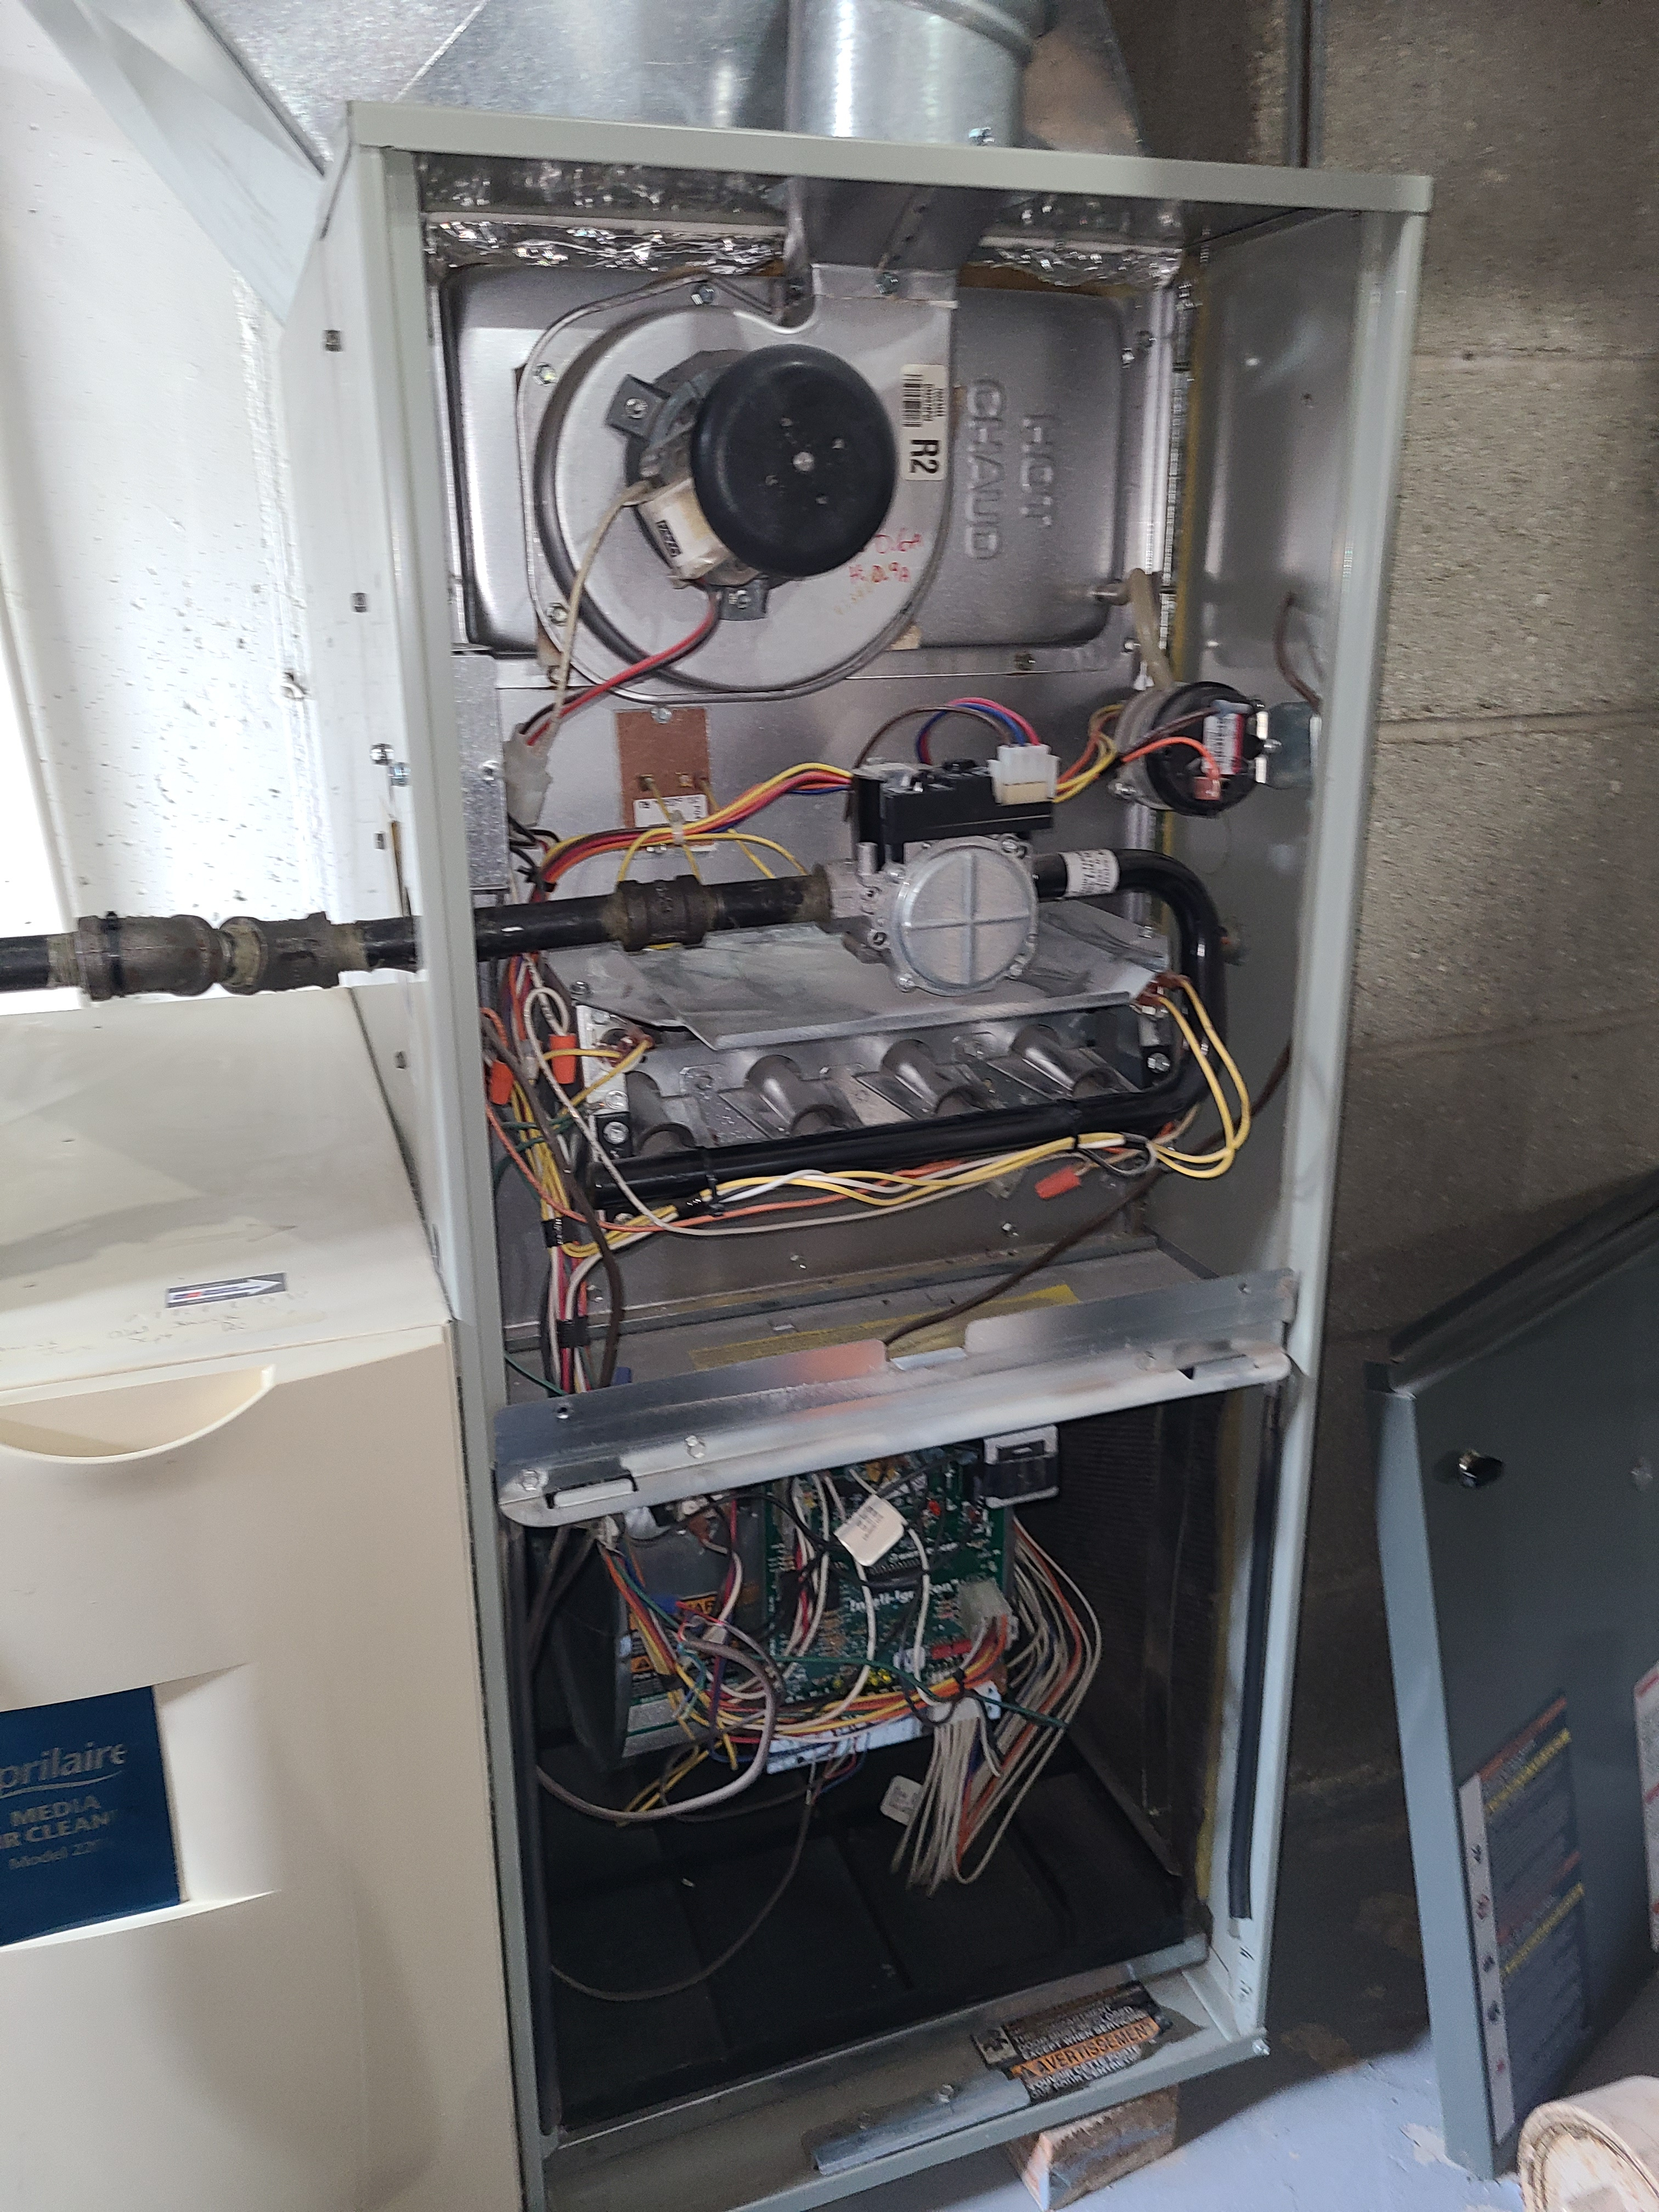 Trane furnace fall clean and check. System tuned up and ready for winter.